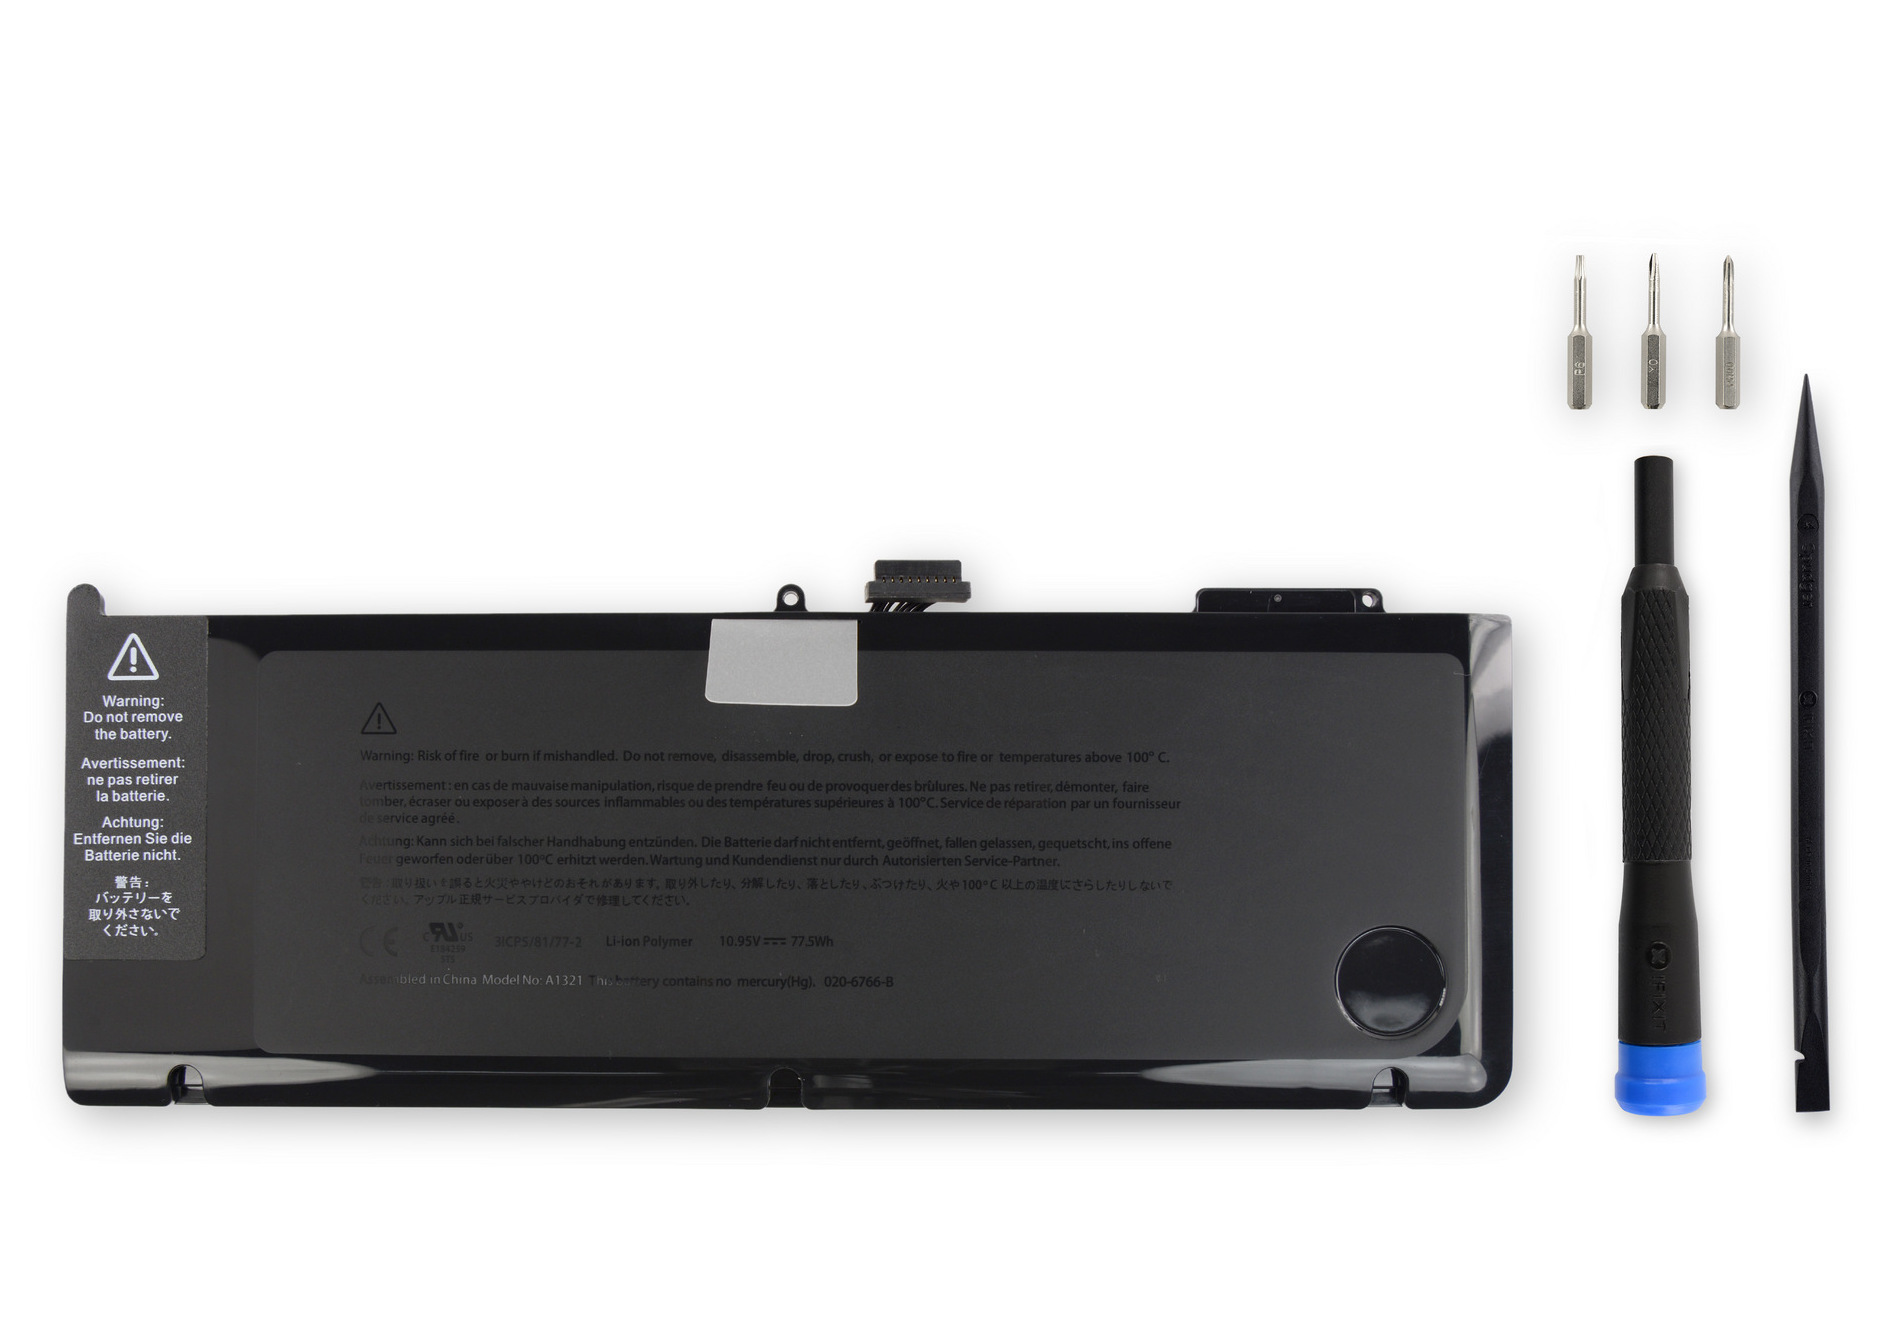 How To Tell If Your Mac Laptop Needs A New Battery Ifixit Area 17 What Sai Electronics Symbols Ne Power Plugs Typical Macbook Fix Kit